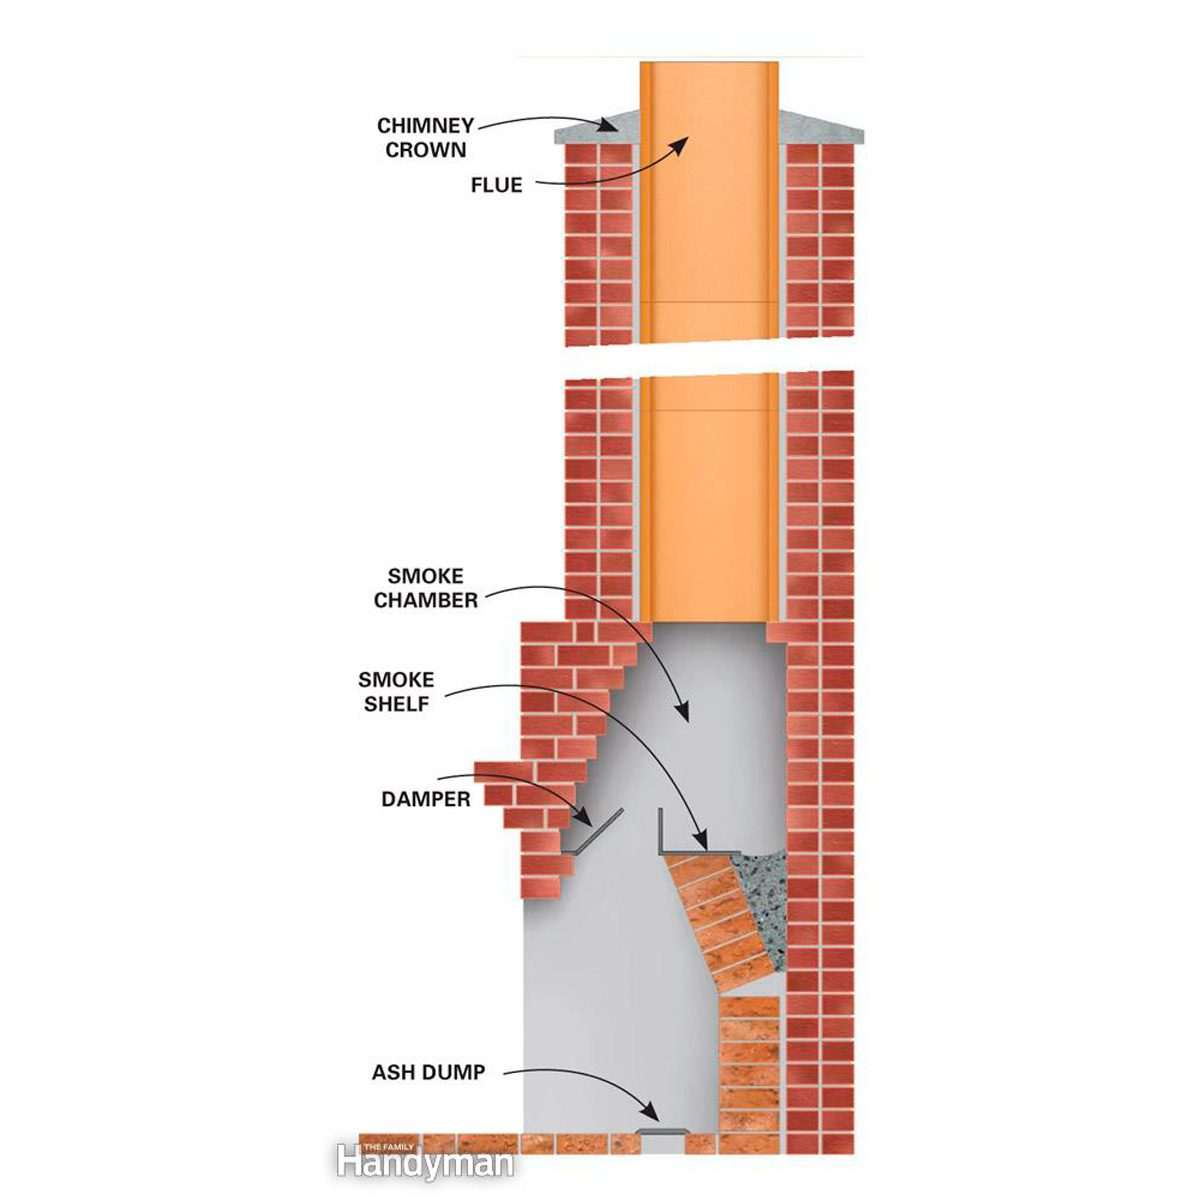 hight resolution of clean creosote buildup from all parts of the chimney most chimney fires start in the smoke chamber smoke shelf area so it s the most important area to